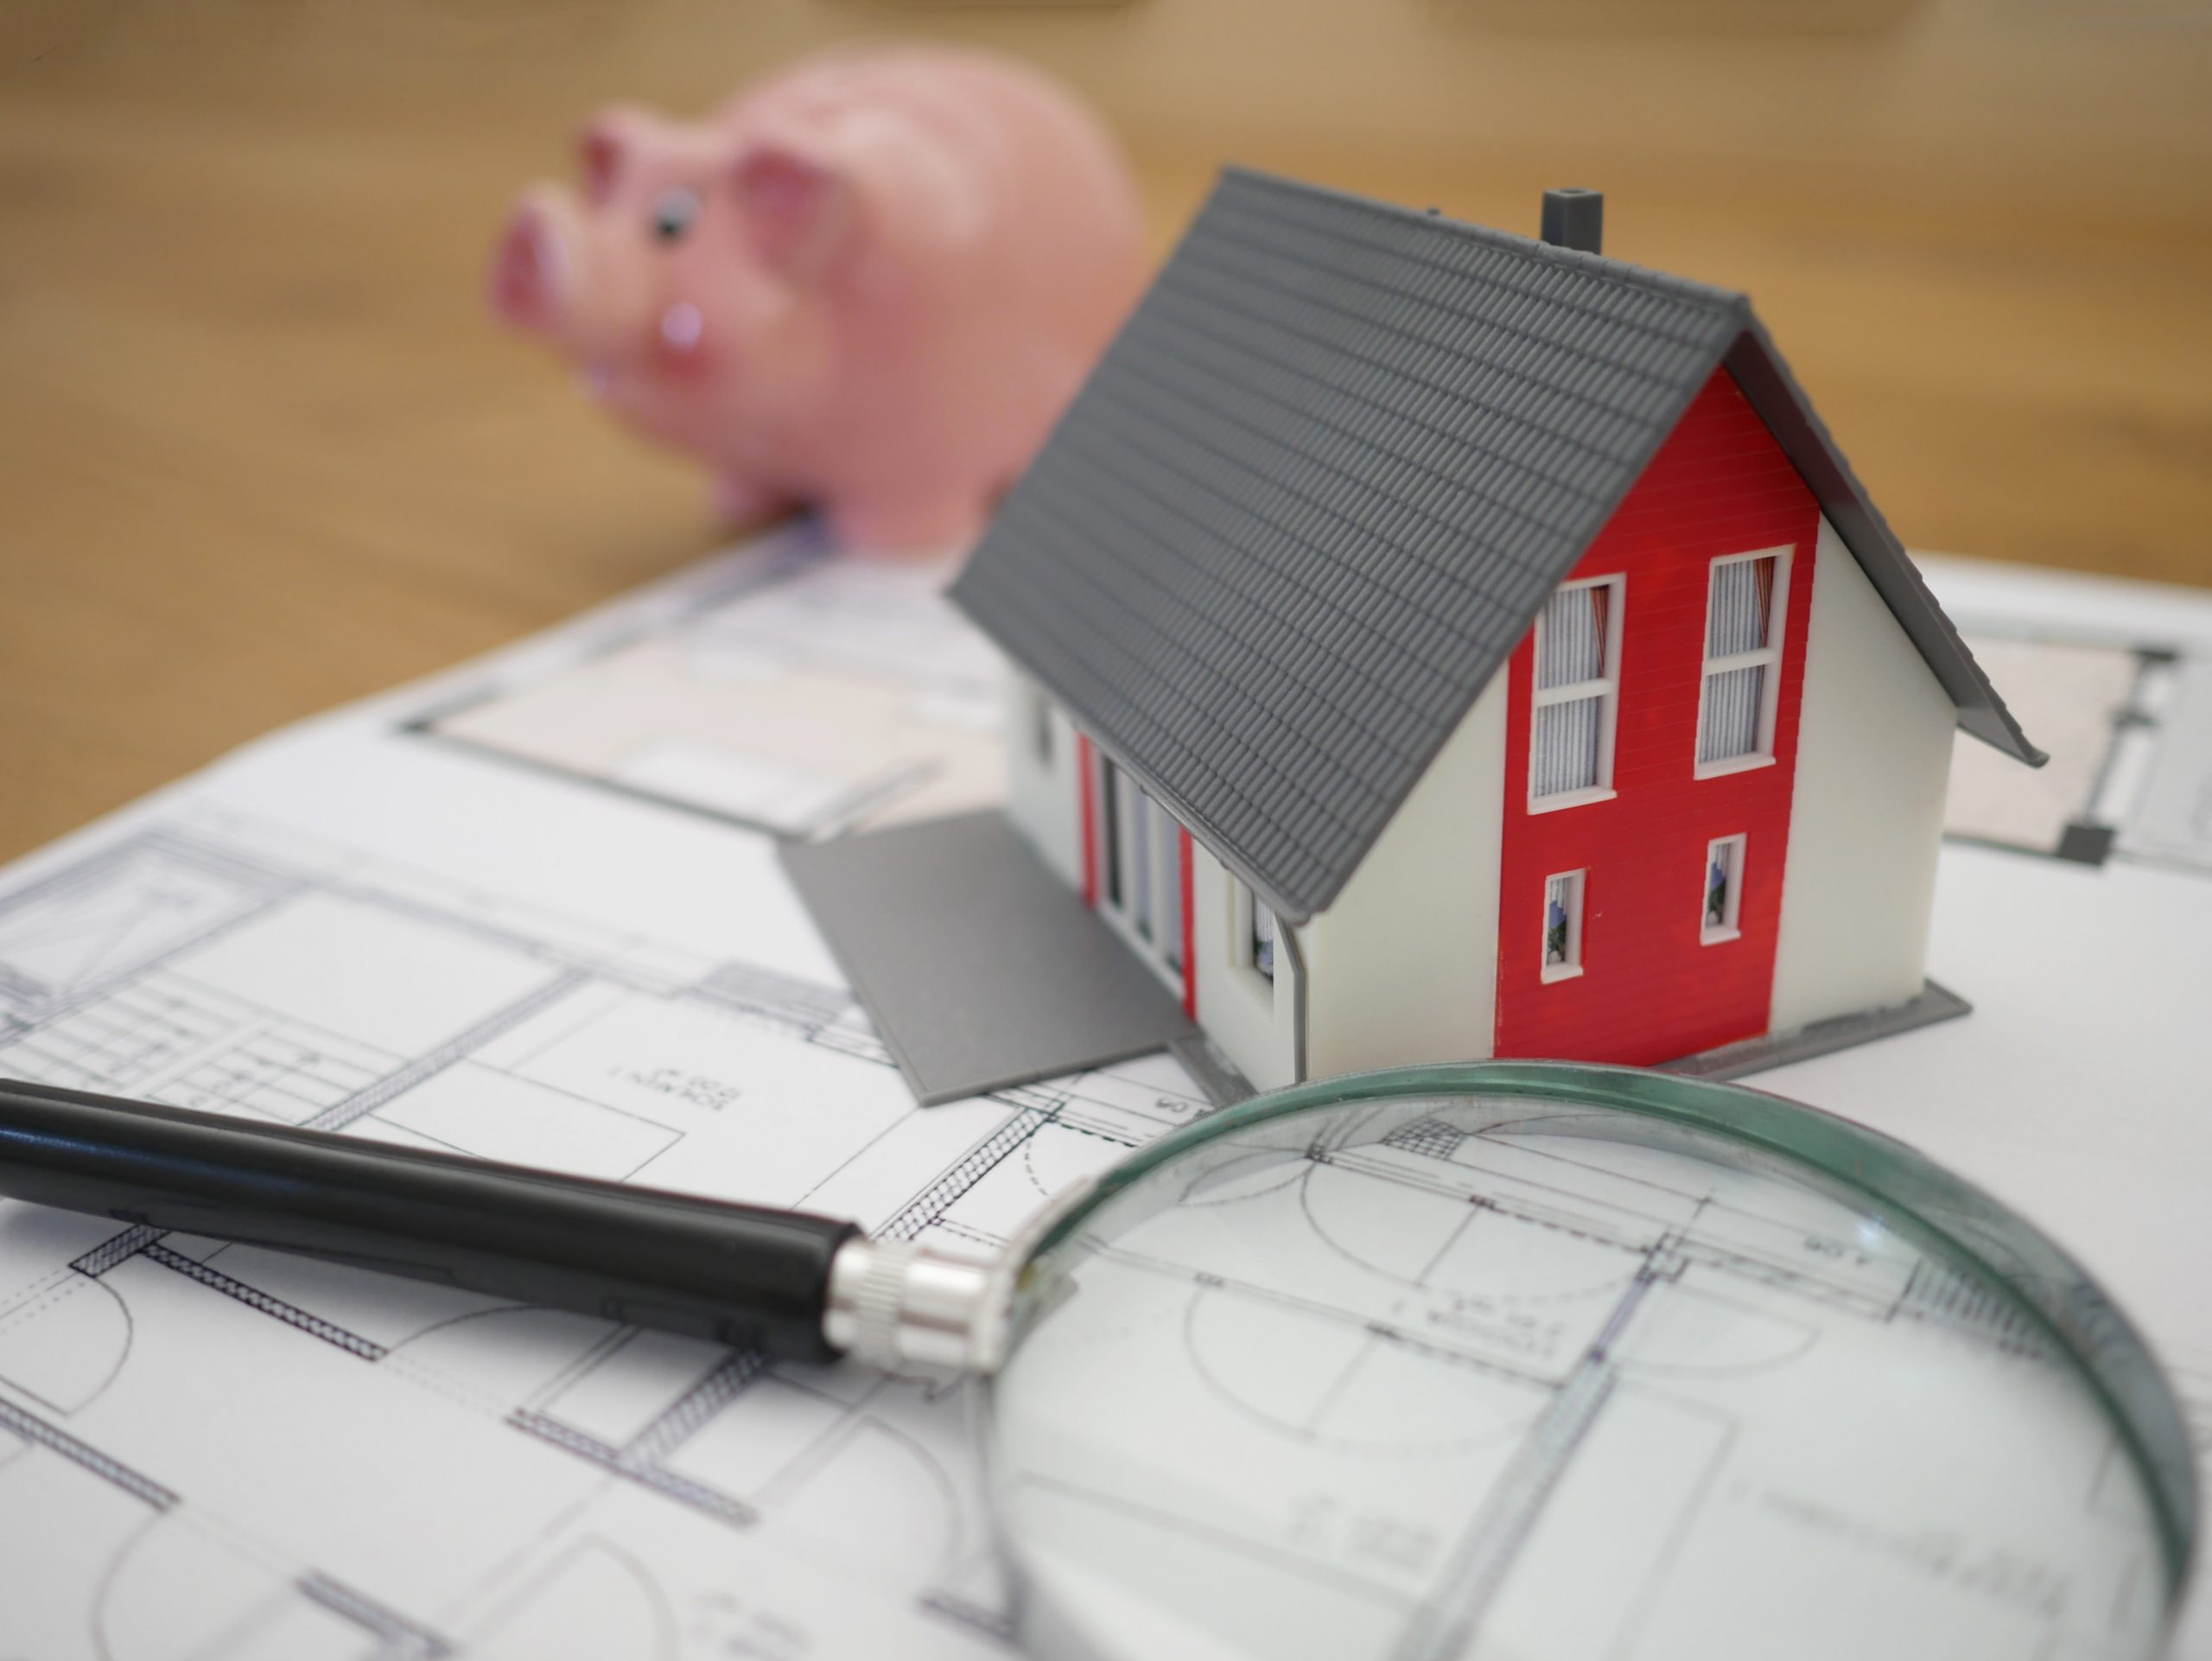 Wooden house, piggy bank, magnifying glass